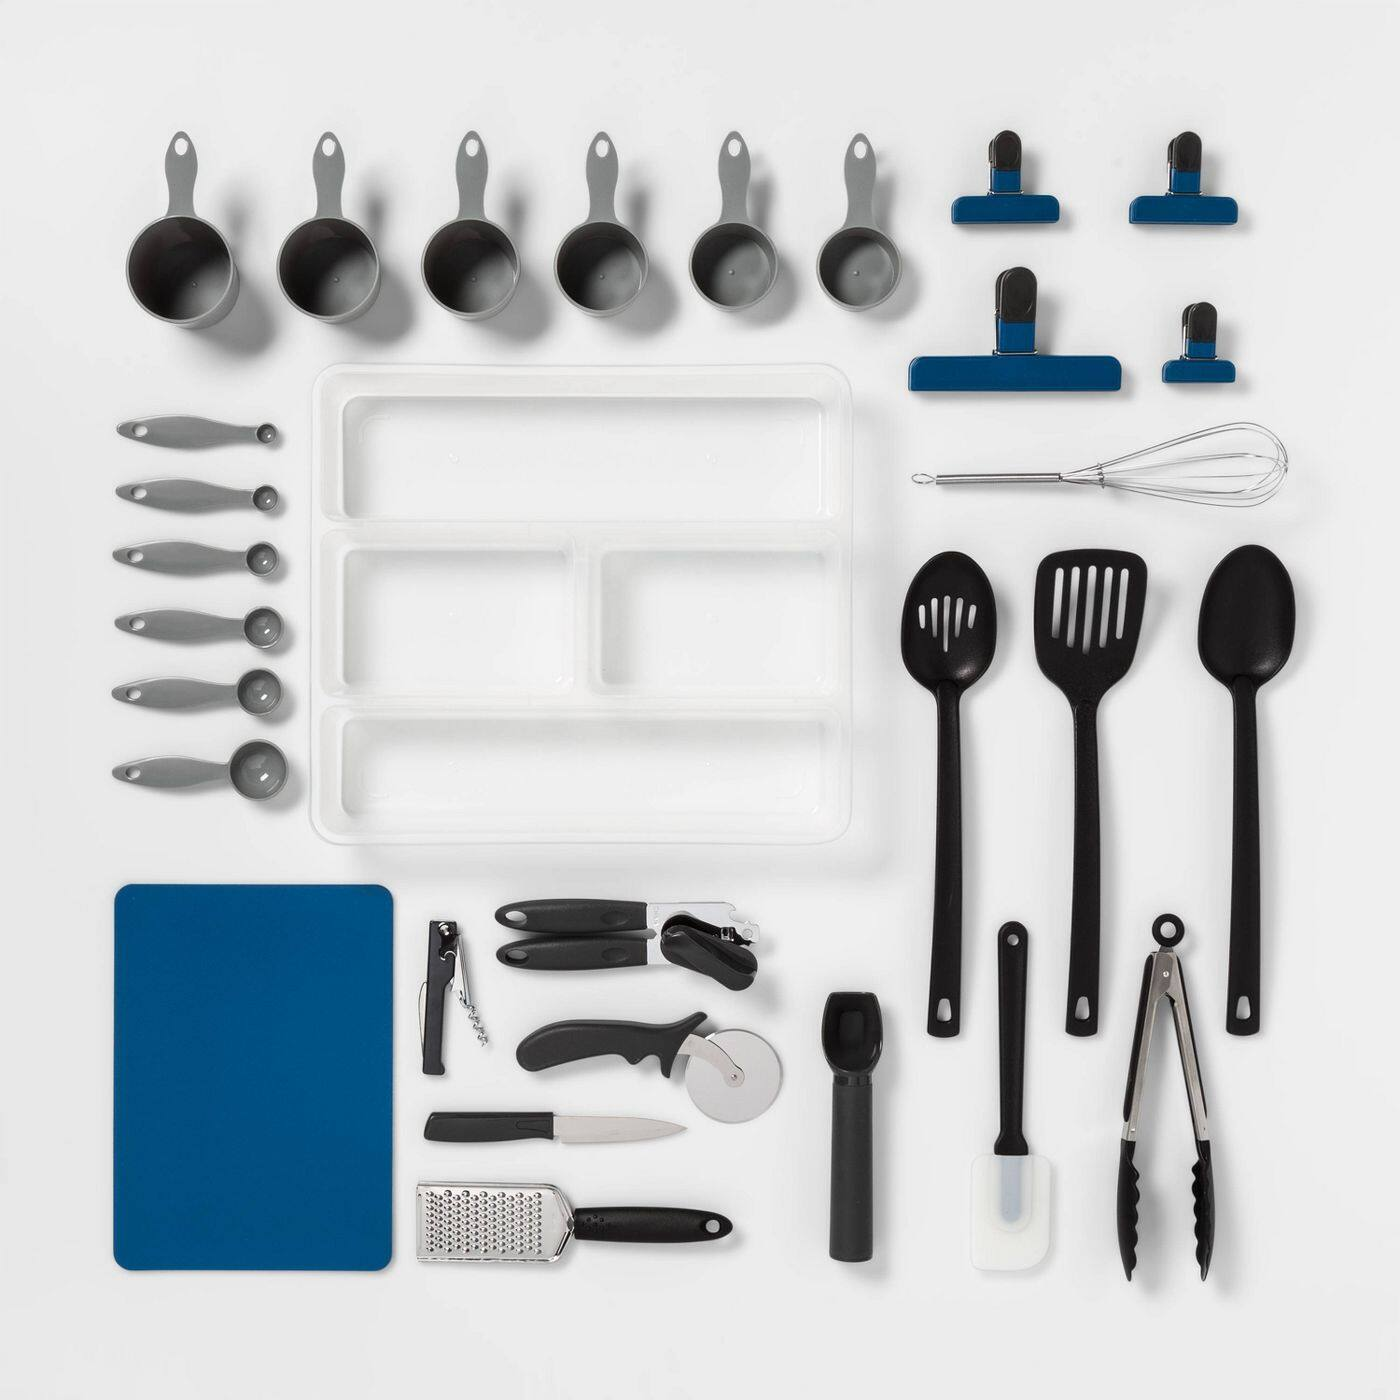 30-Piece Room Essentials Kitchen Utensil Set w/ Organizer Tray